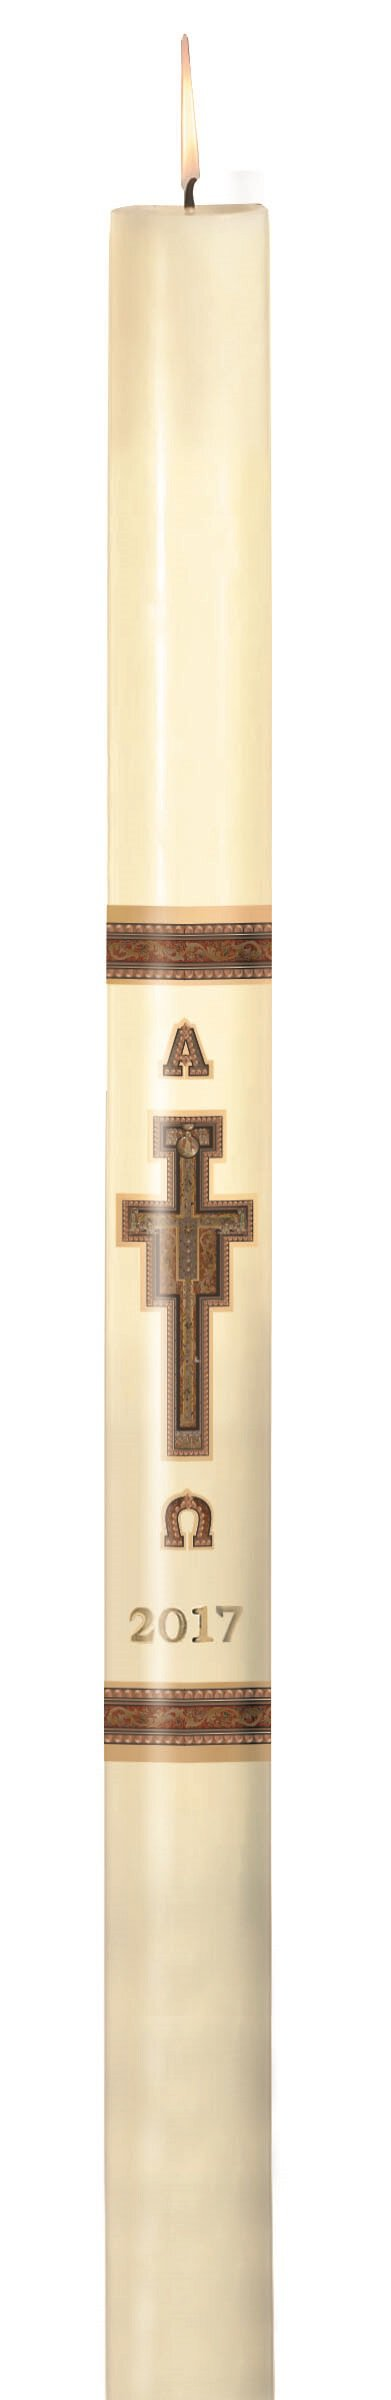 No 6 Special San Damiano Paschal Candle